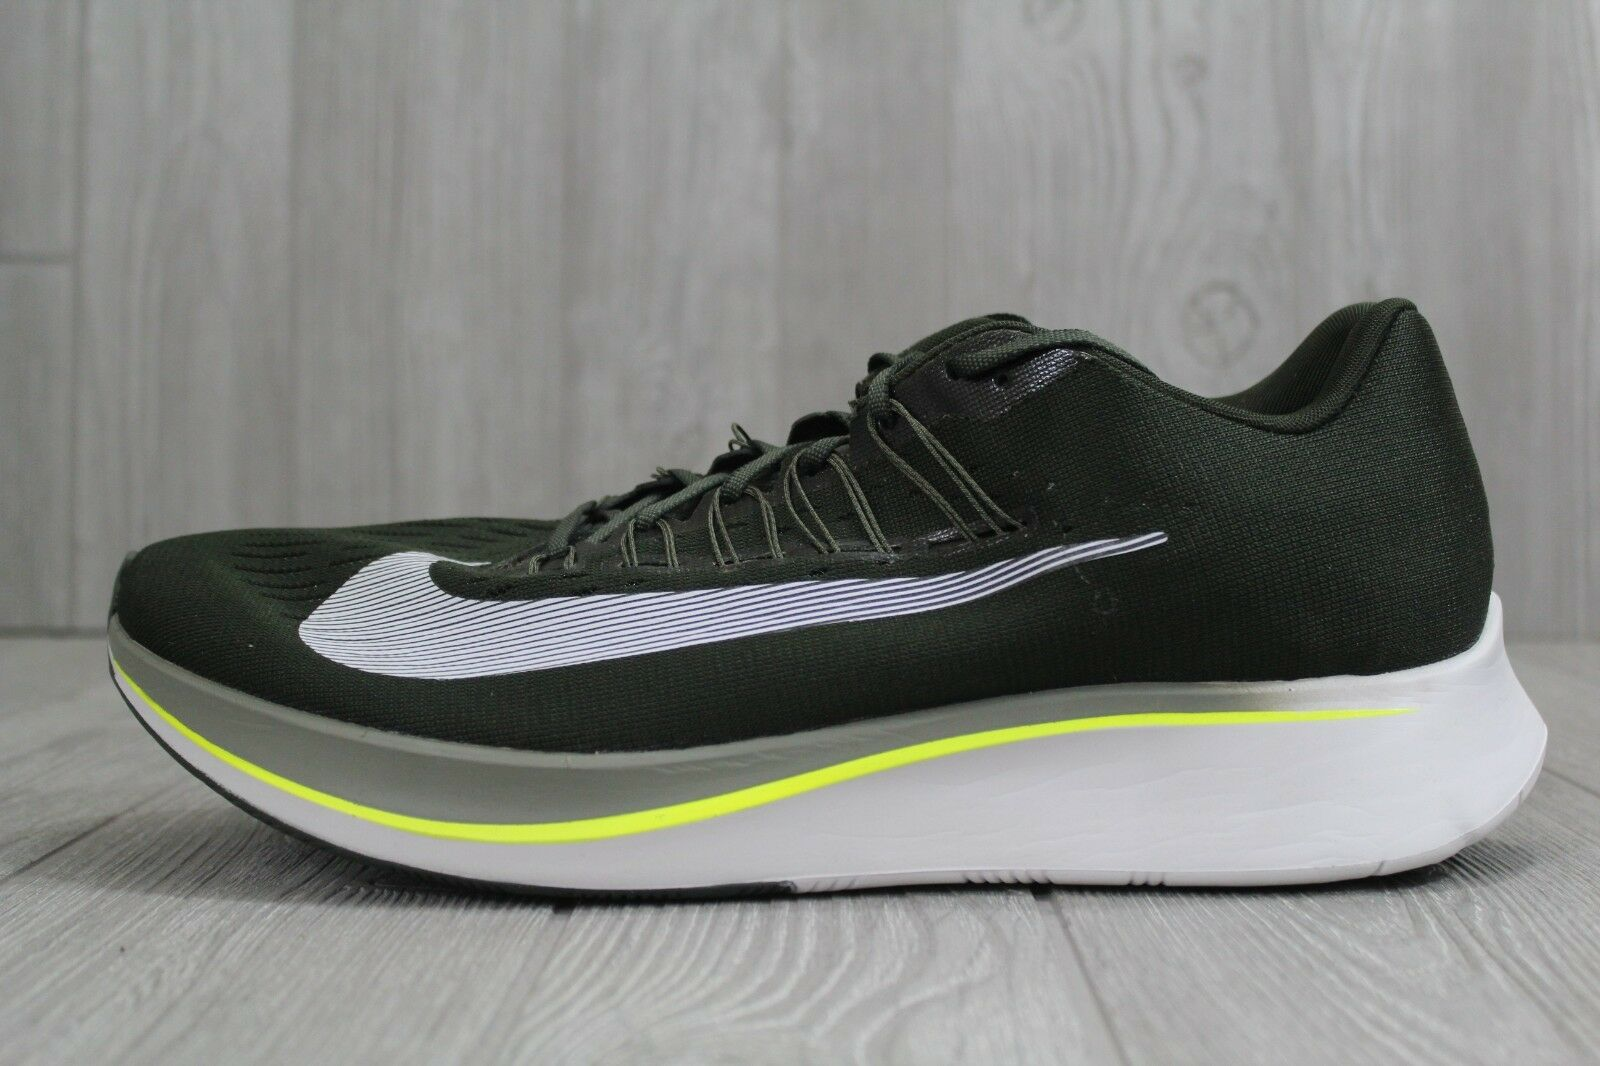 huge selection of 53dc1 436c1 32 New Nike Zoom Fly Men s Men s Men s Running shoes 880848-301 Sequoia  Olive Size